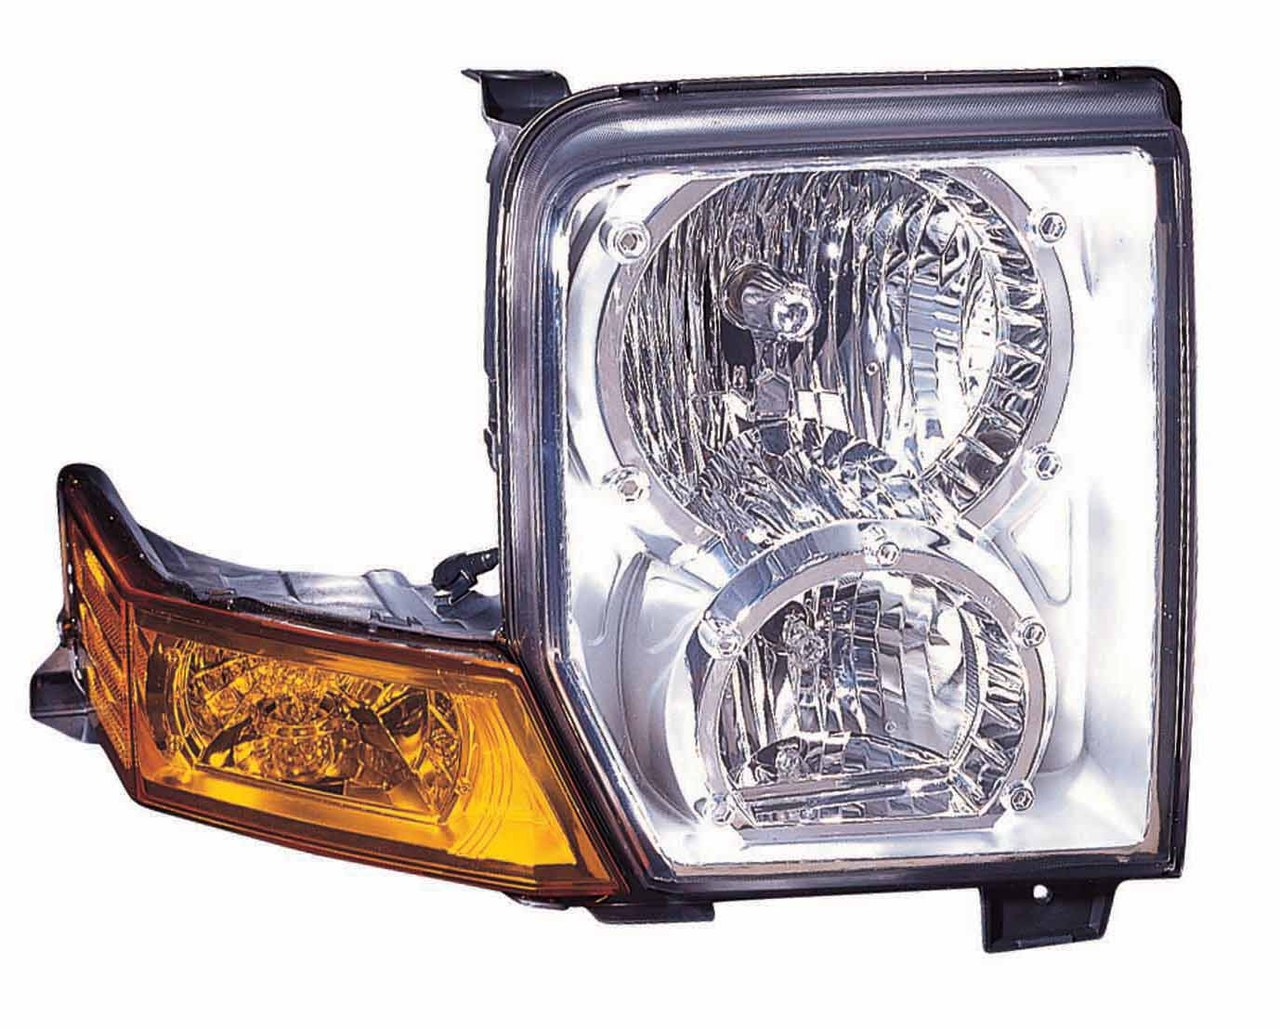 Jeep Commander 2006 2007 2008 2009 2010 right passenger headlight